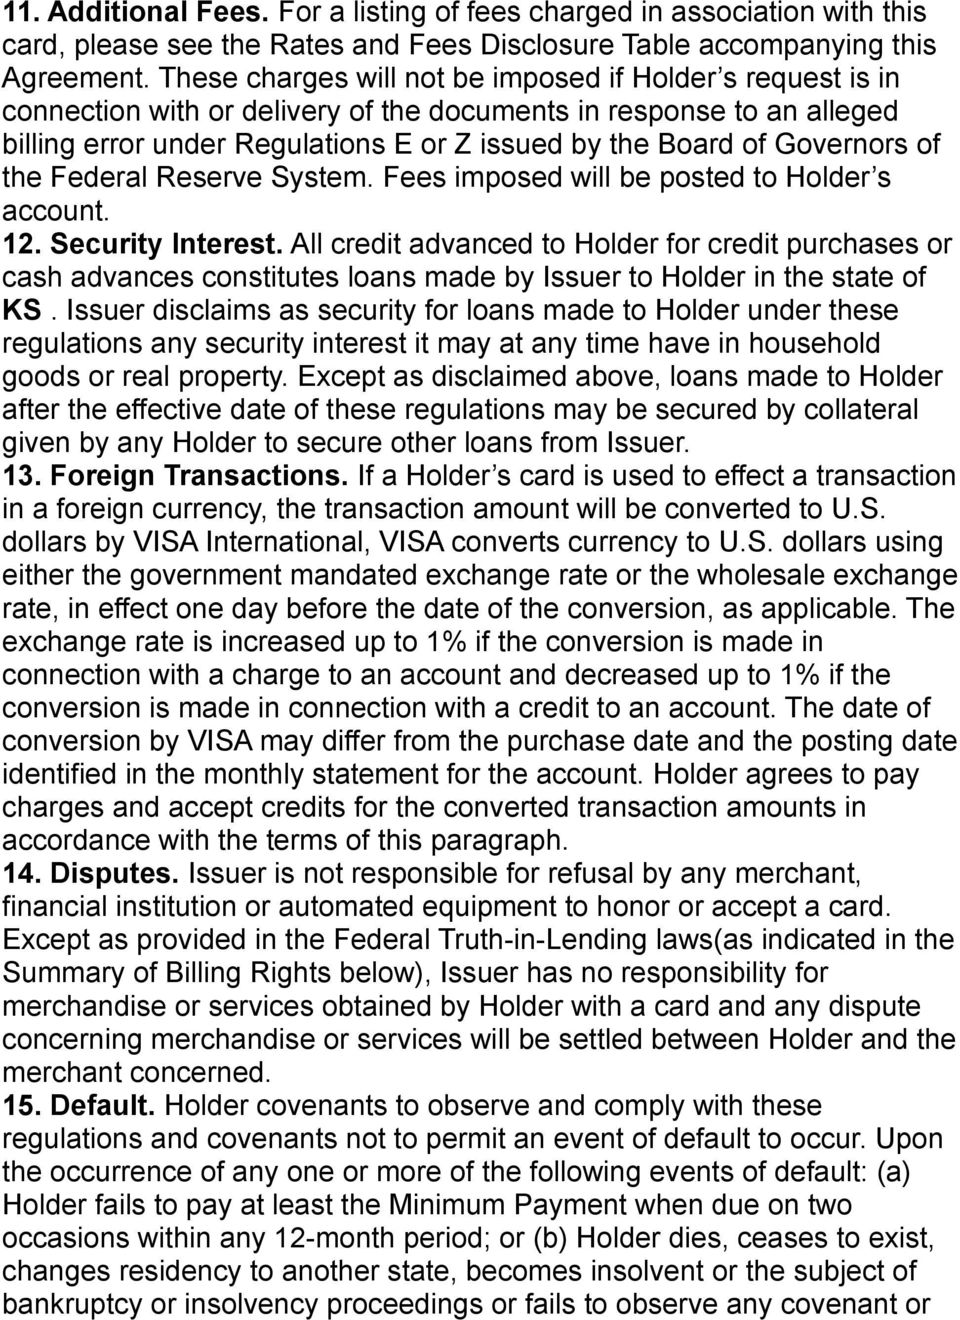 Governors of the Federal Reserve System. Fees imposed will be posted to Holder s account. 12. Security Interest.